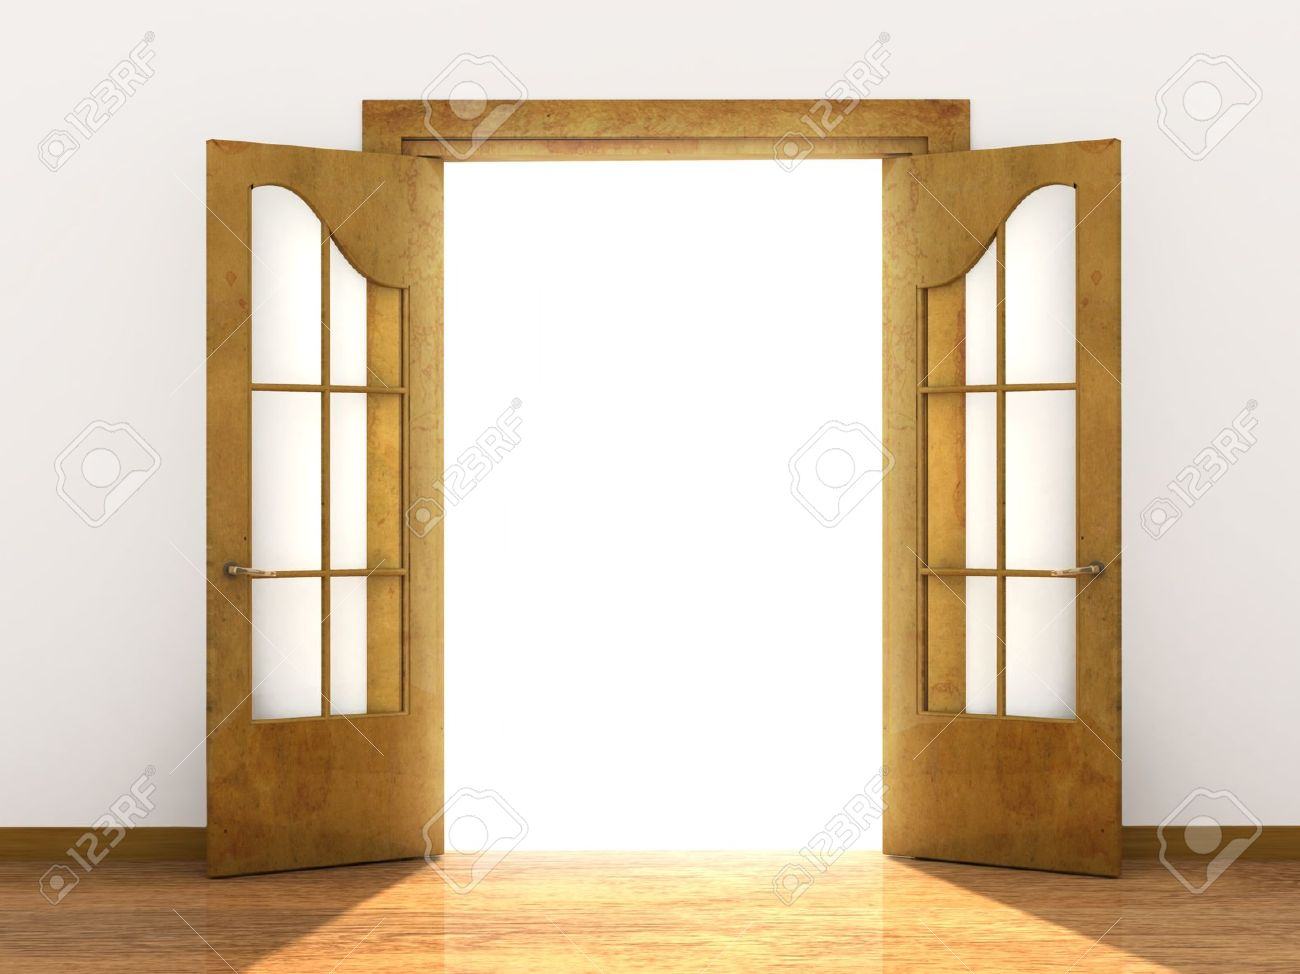 Free Church Doors Cliparts, Download Free Clip Art, Free.